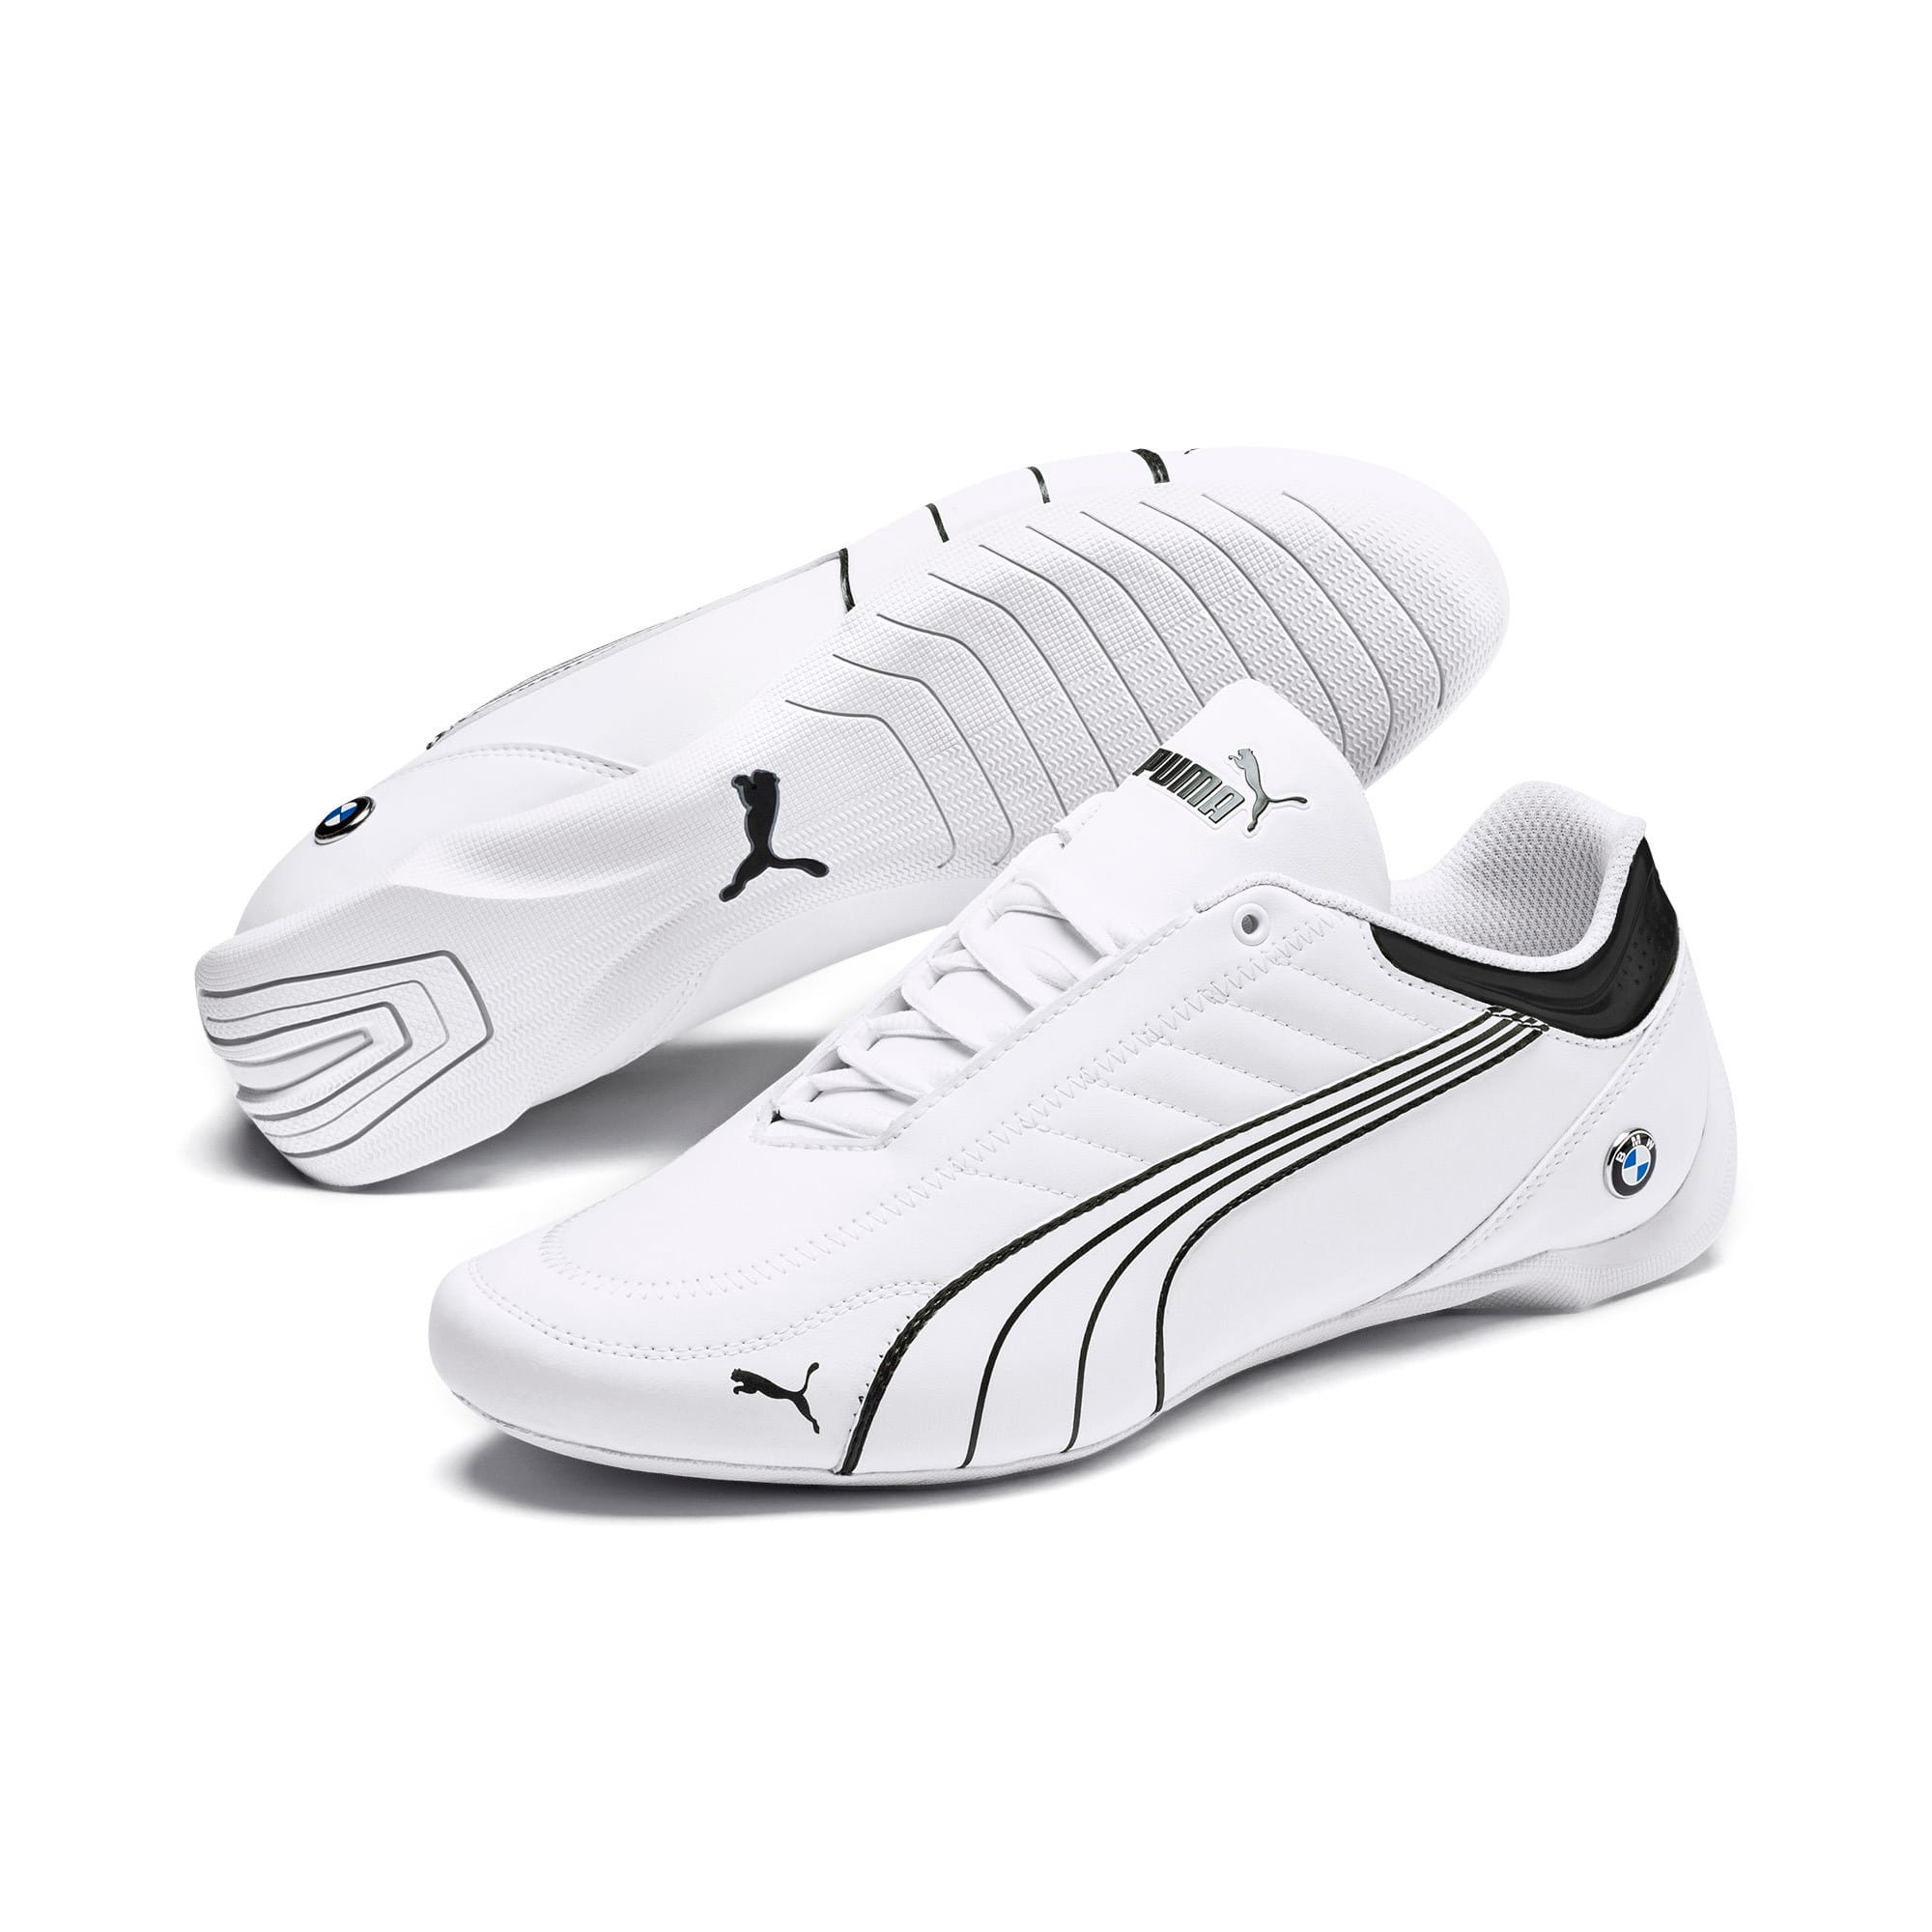 Thumbnail 3 of BMW M Motorsport Future Kart Cat sportschoenen, Puma White-Puma Black, medium